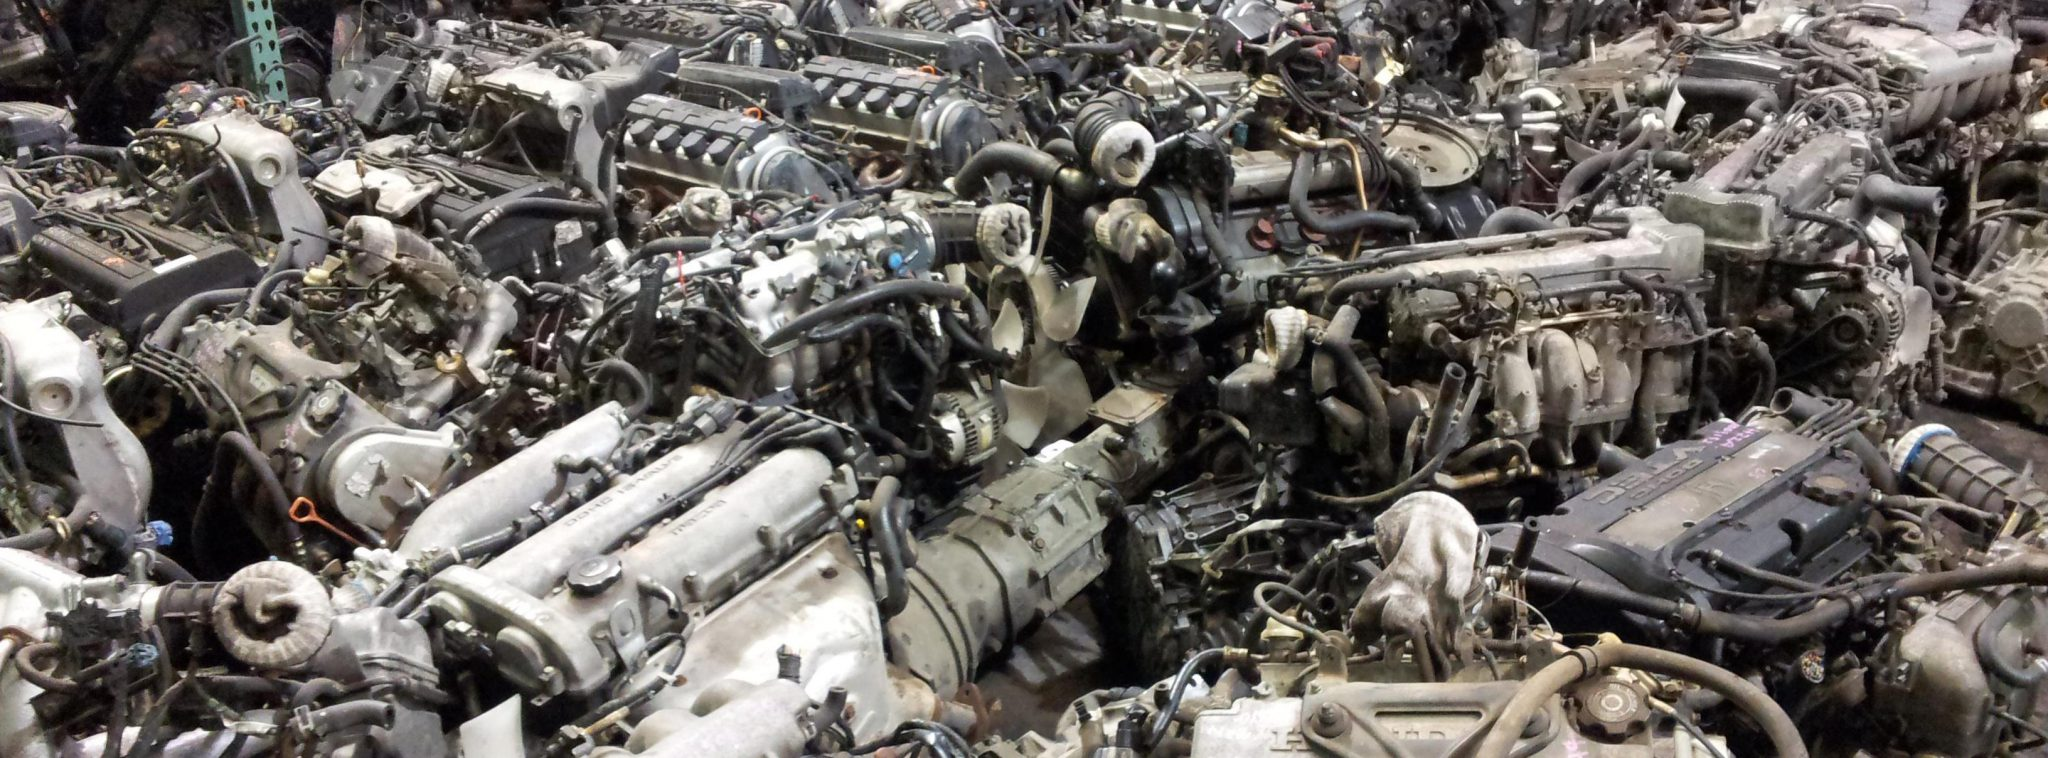 Used engines motors gearboxes for sale car wrecker nz for Used car motors for sale